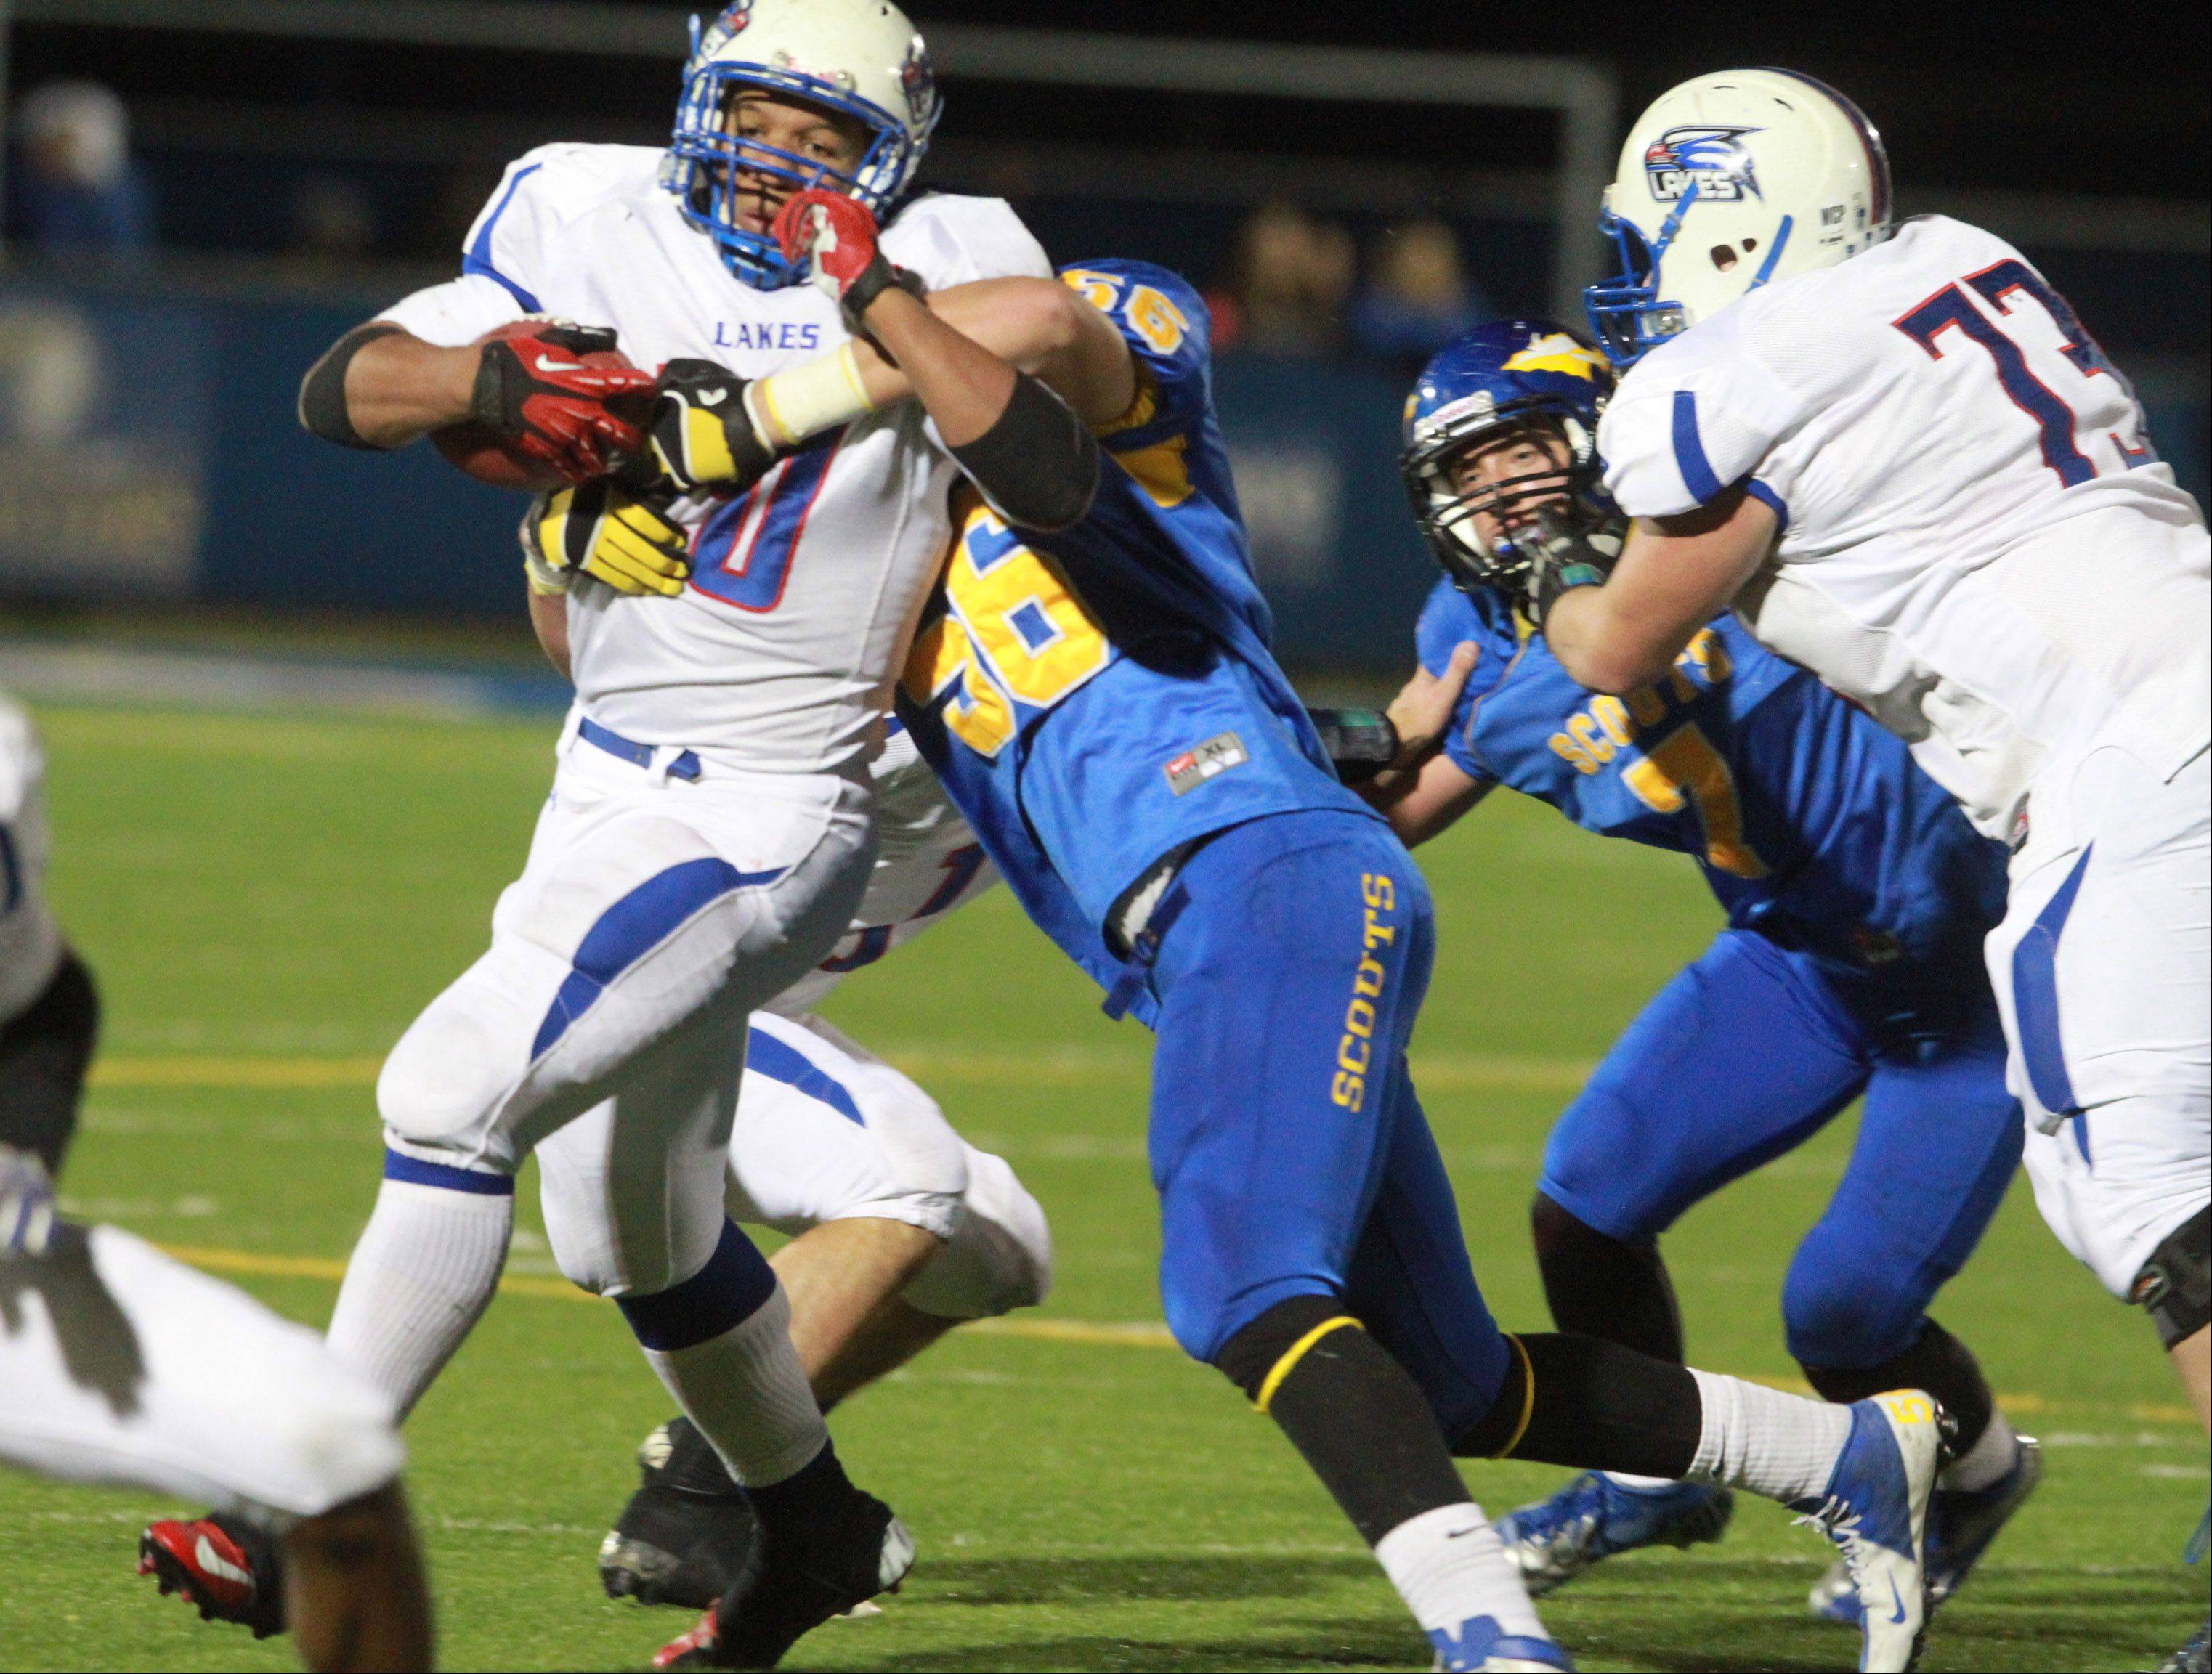 Lakes running-back Direll Clark is wrapped up by a Lake Forest defender.